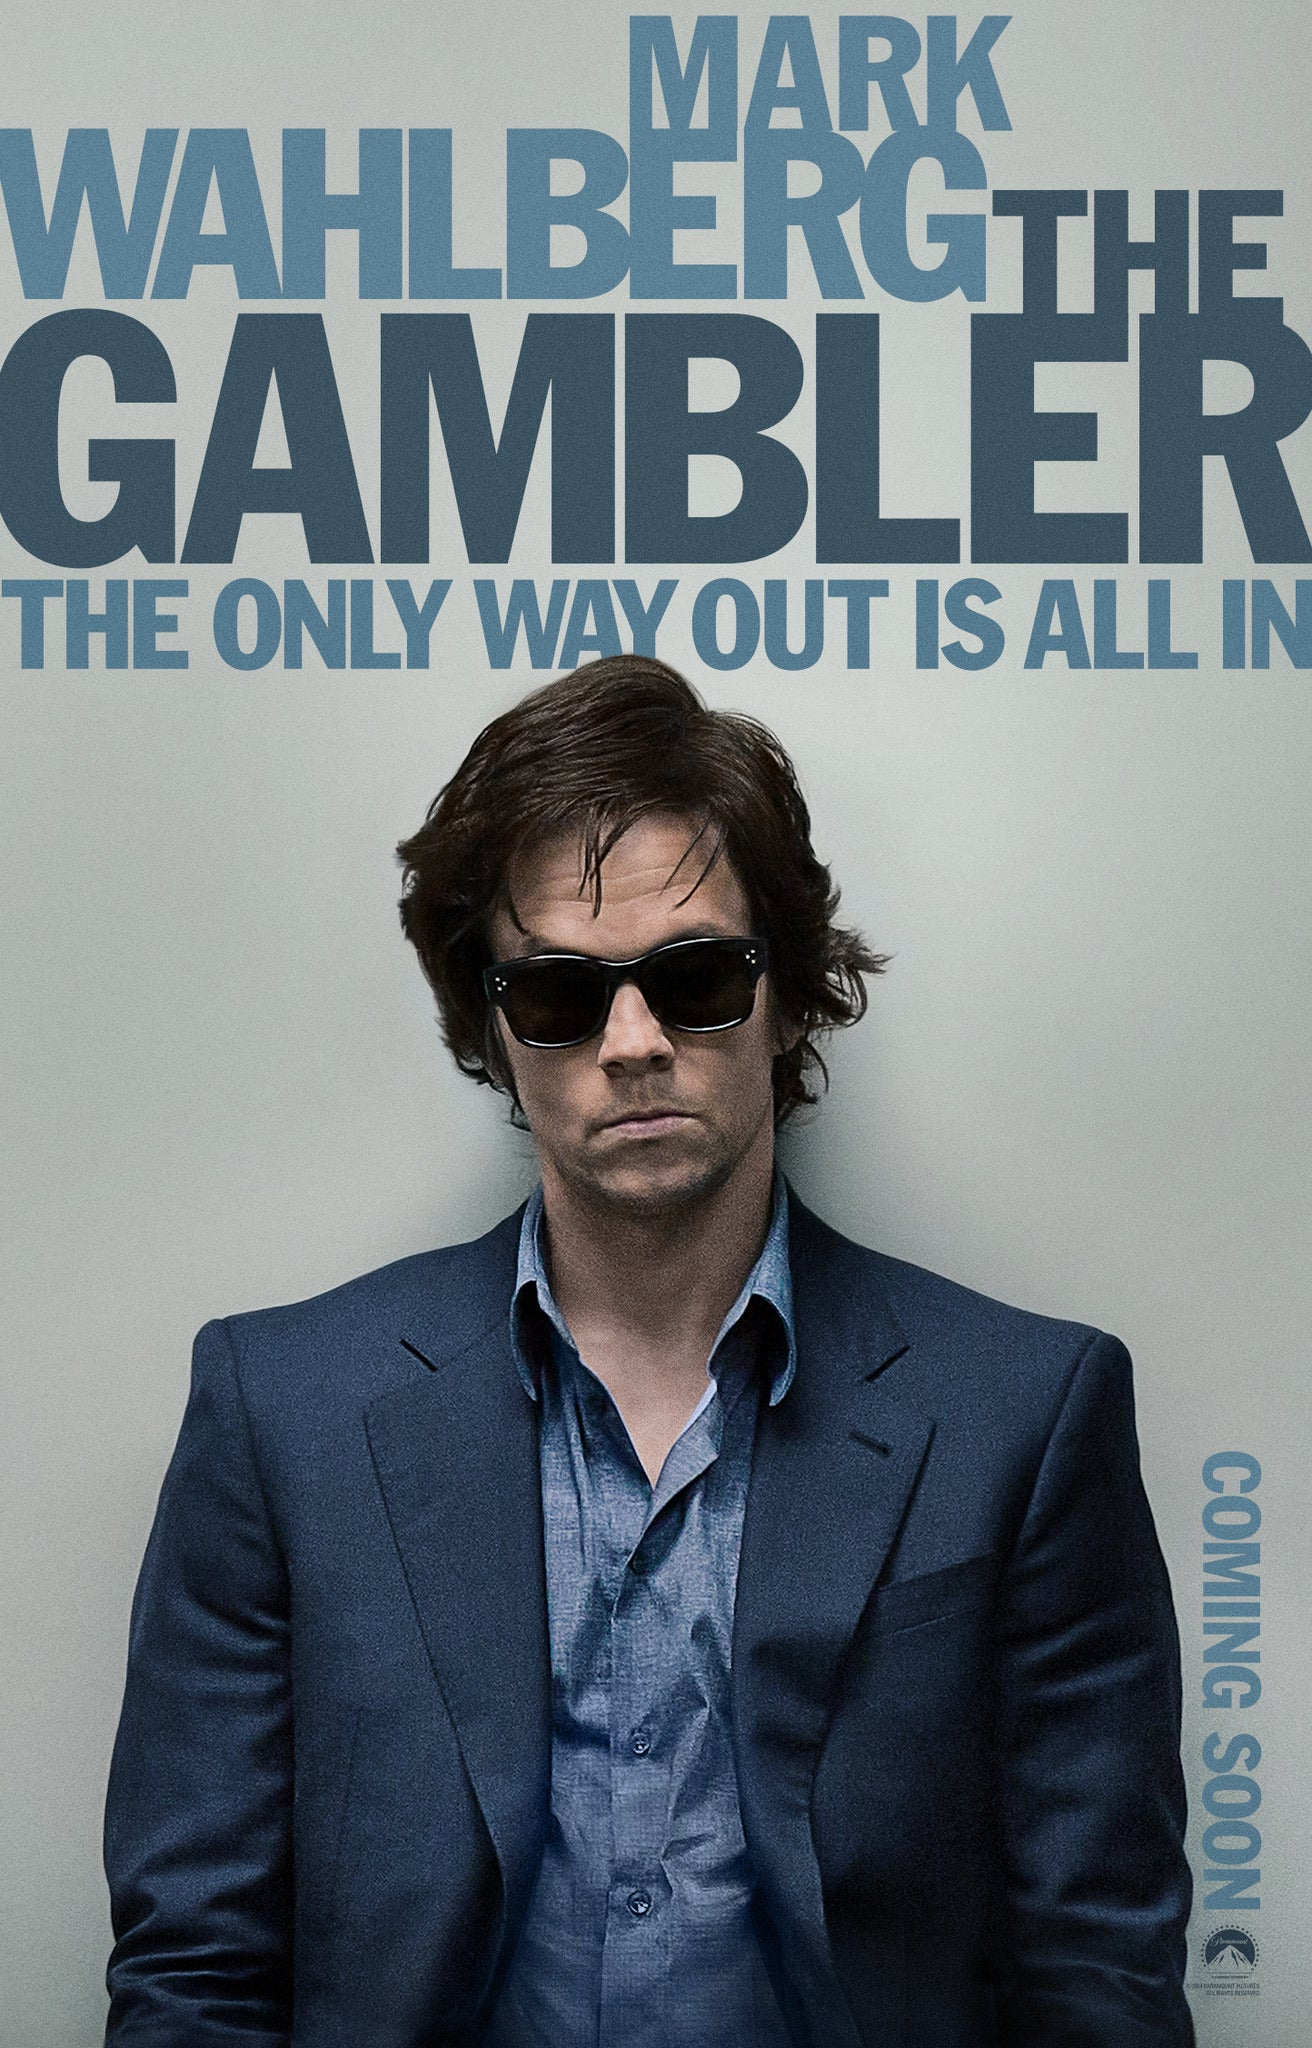 The Gambler (2015) iTunes HD redemption only